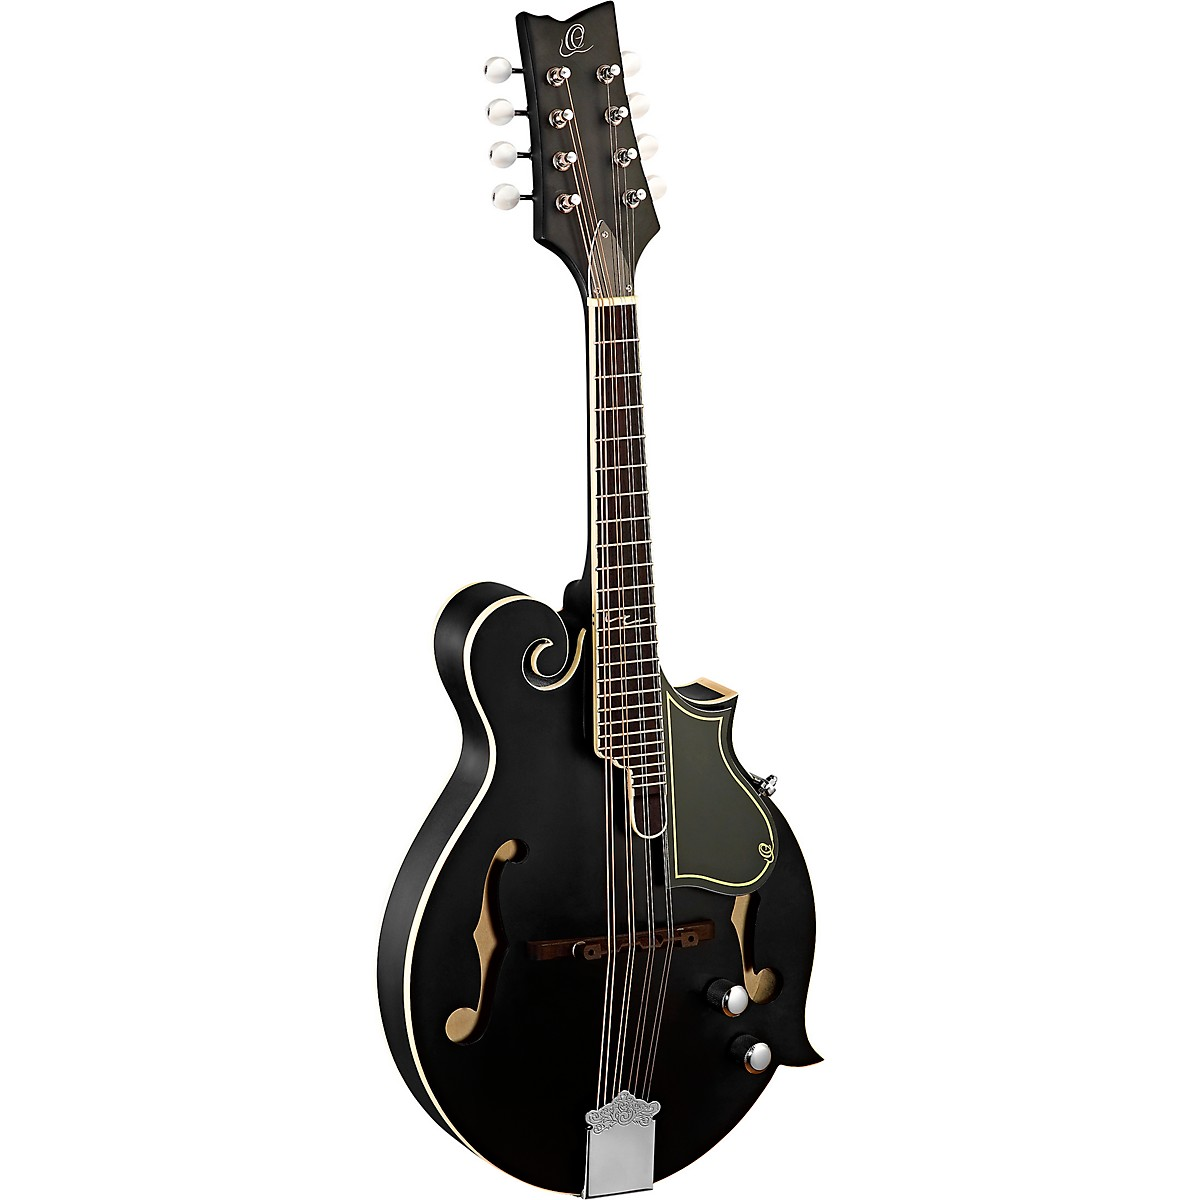 Ortega RMFE40SBK Acoustic-Electric Mandolin